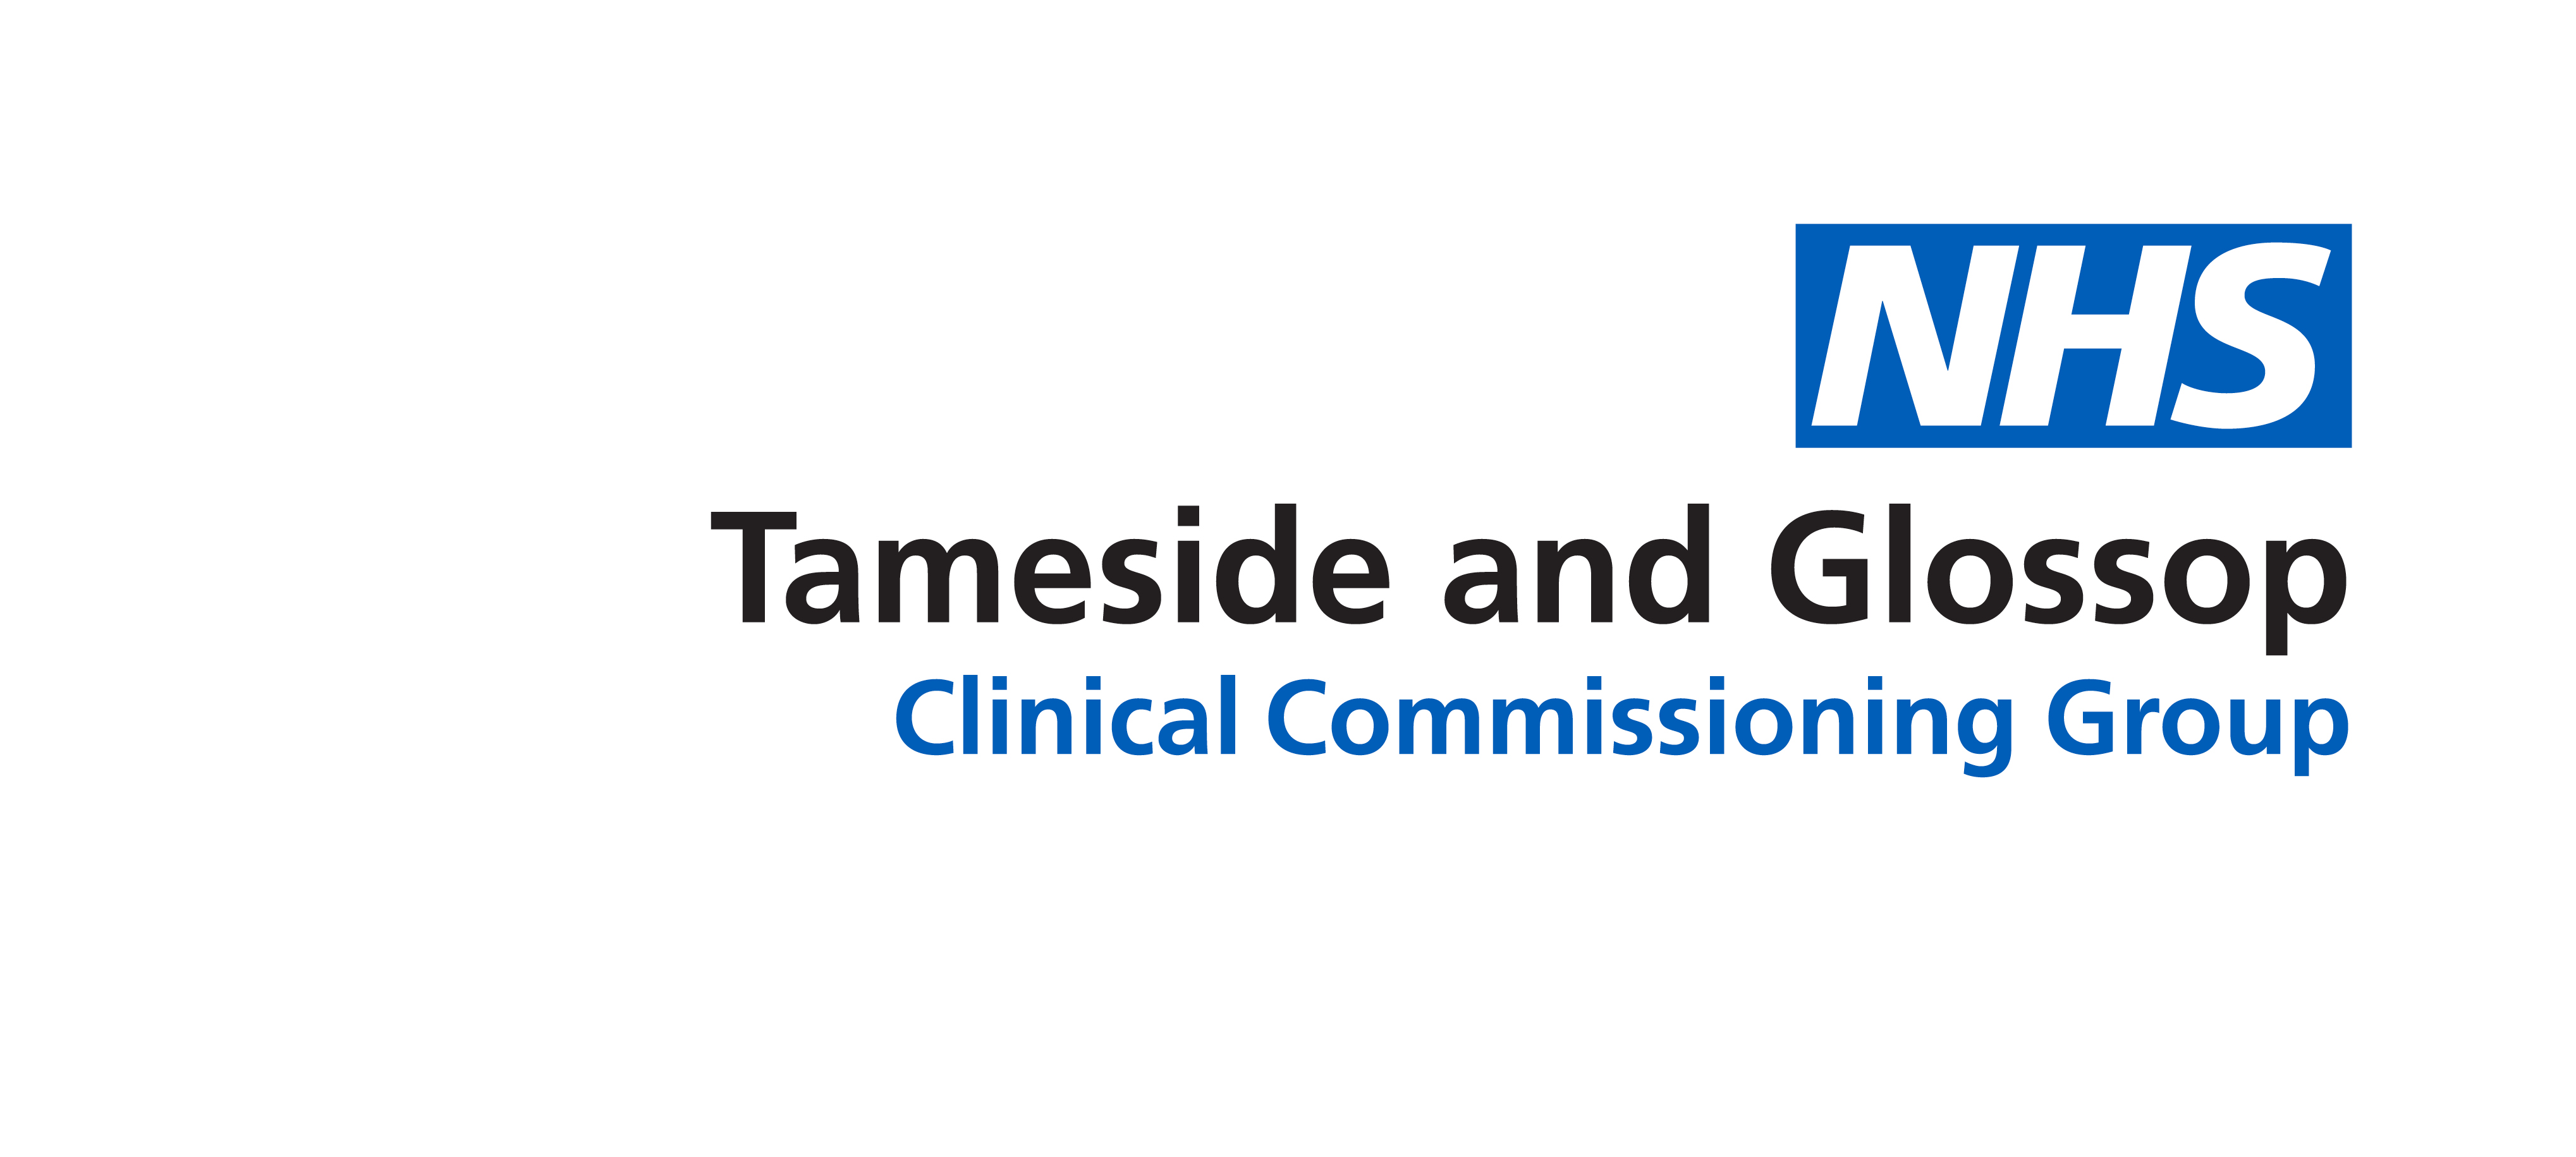 News - NHS Tameside and Glossop Clinical Commissioning Group